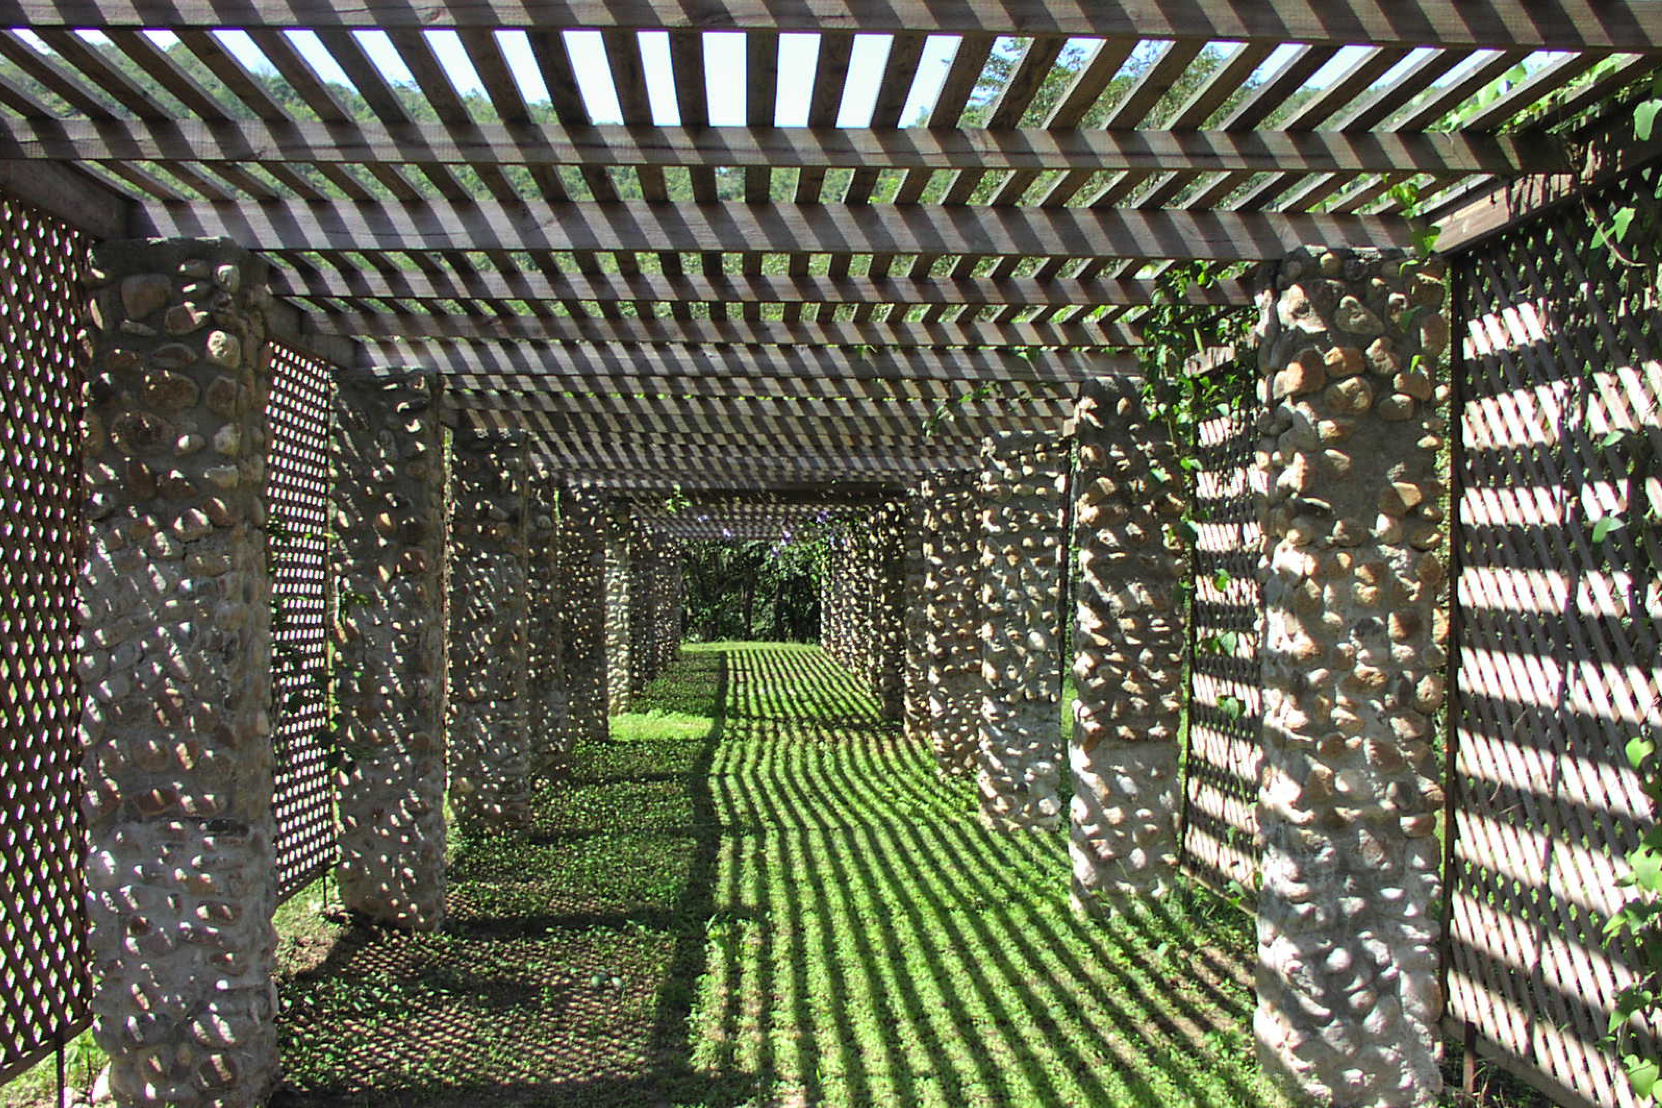 Vine Pergola - A beautiful place to relax during a walk through the gardens, or the perfect event venue.